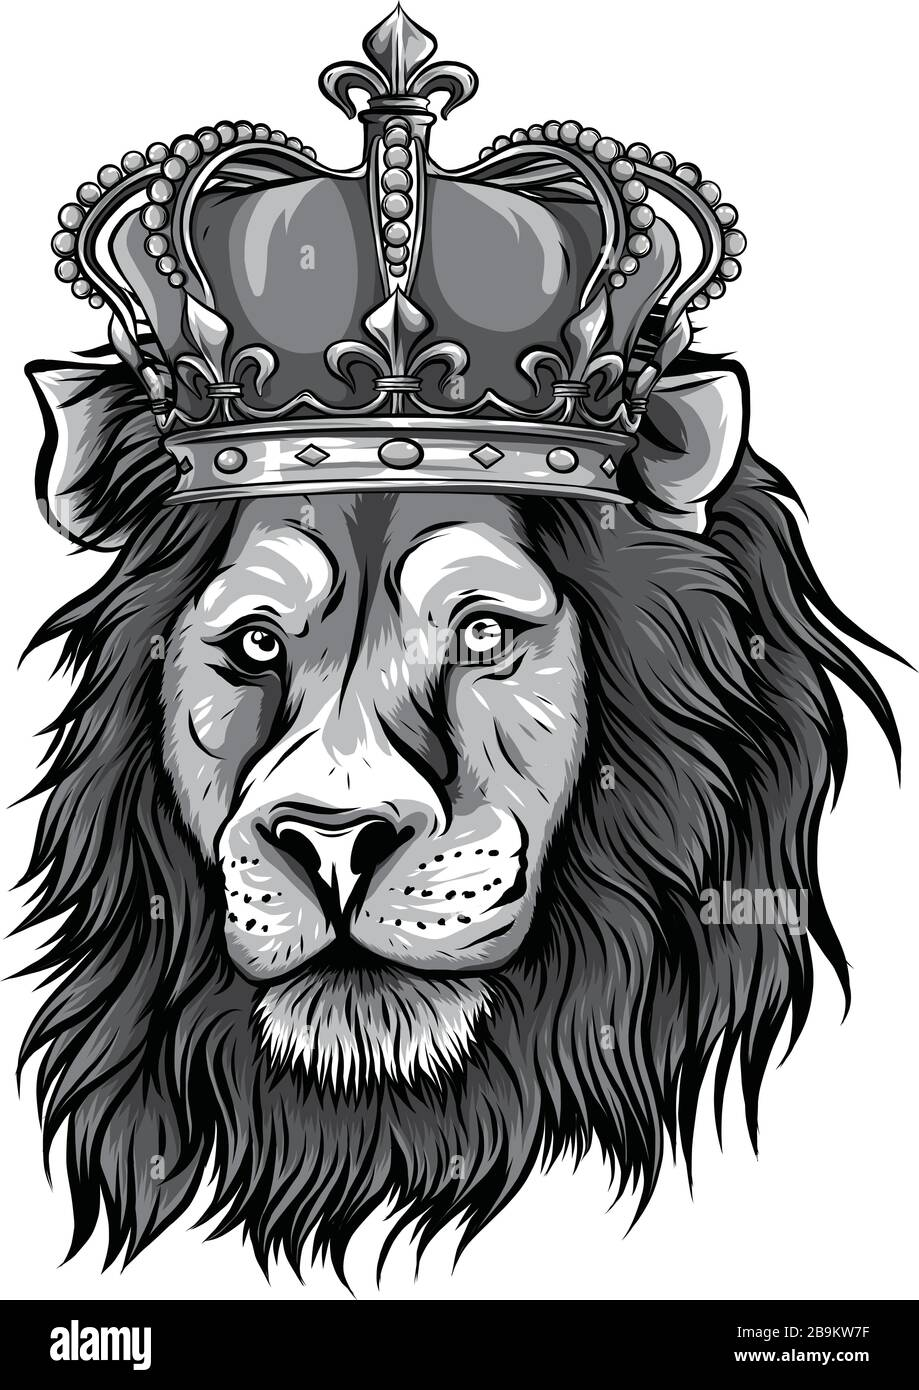 Vector Black And White Tattoo King Lion Illustration Stock Vector Image Art Alamy Posted by free tattos at 3:13 am. https www alamy com vector black and white tattoo king lion illustration image350176163 html